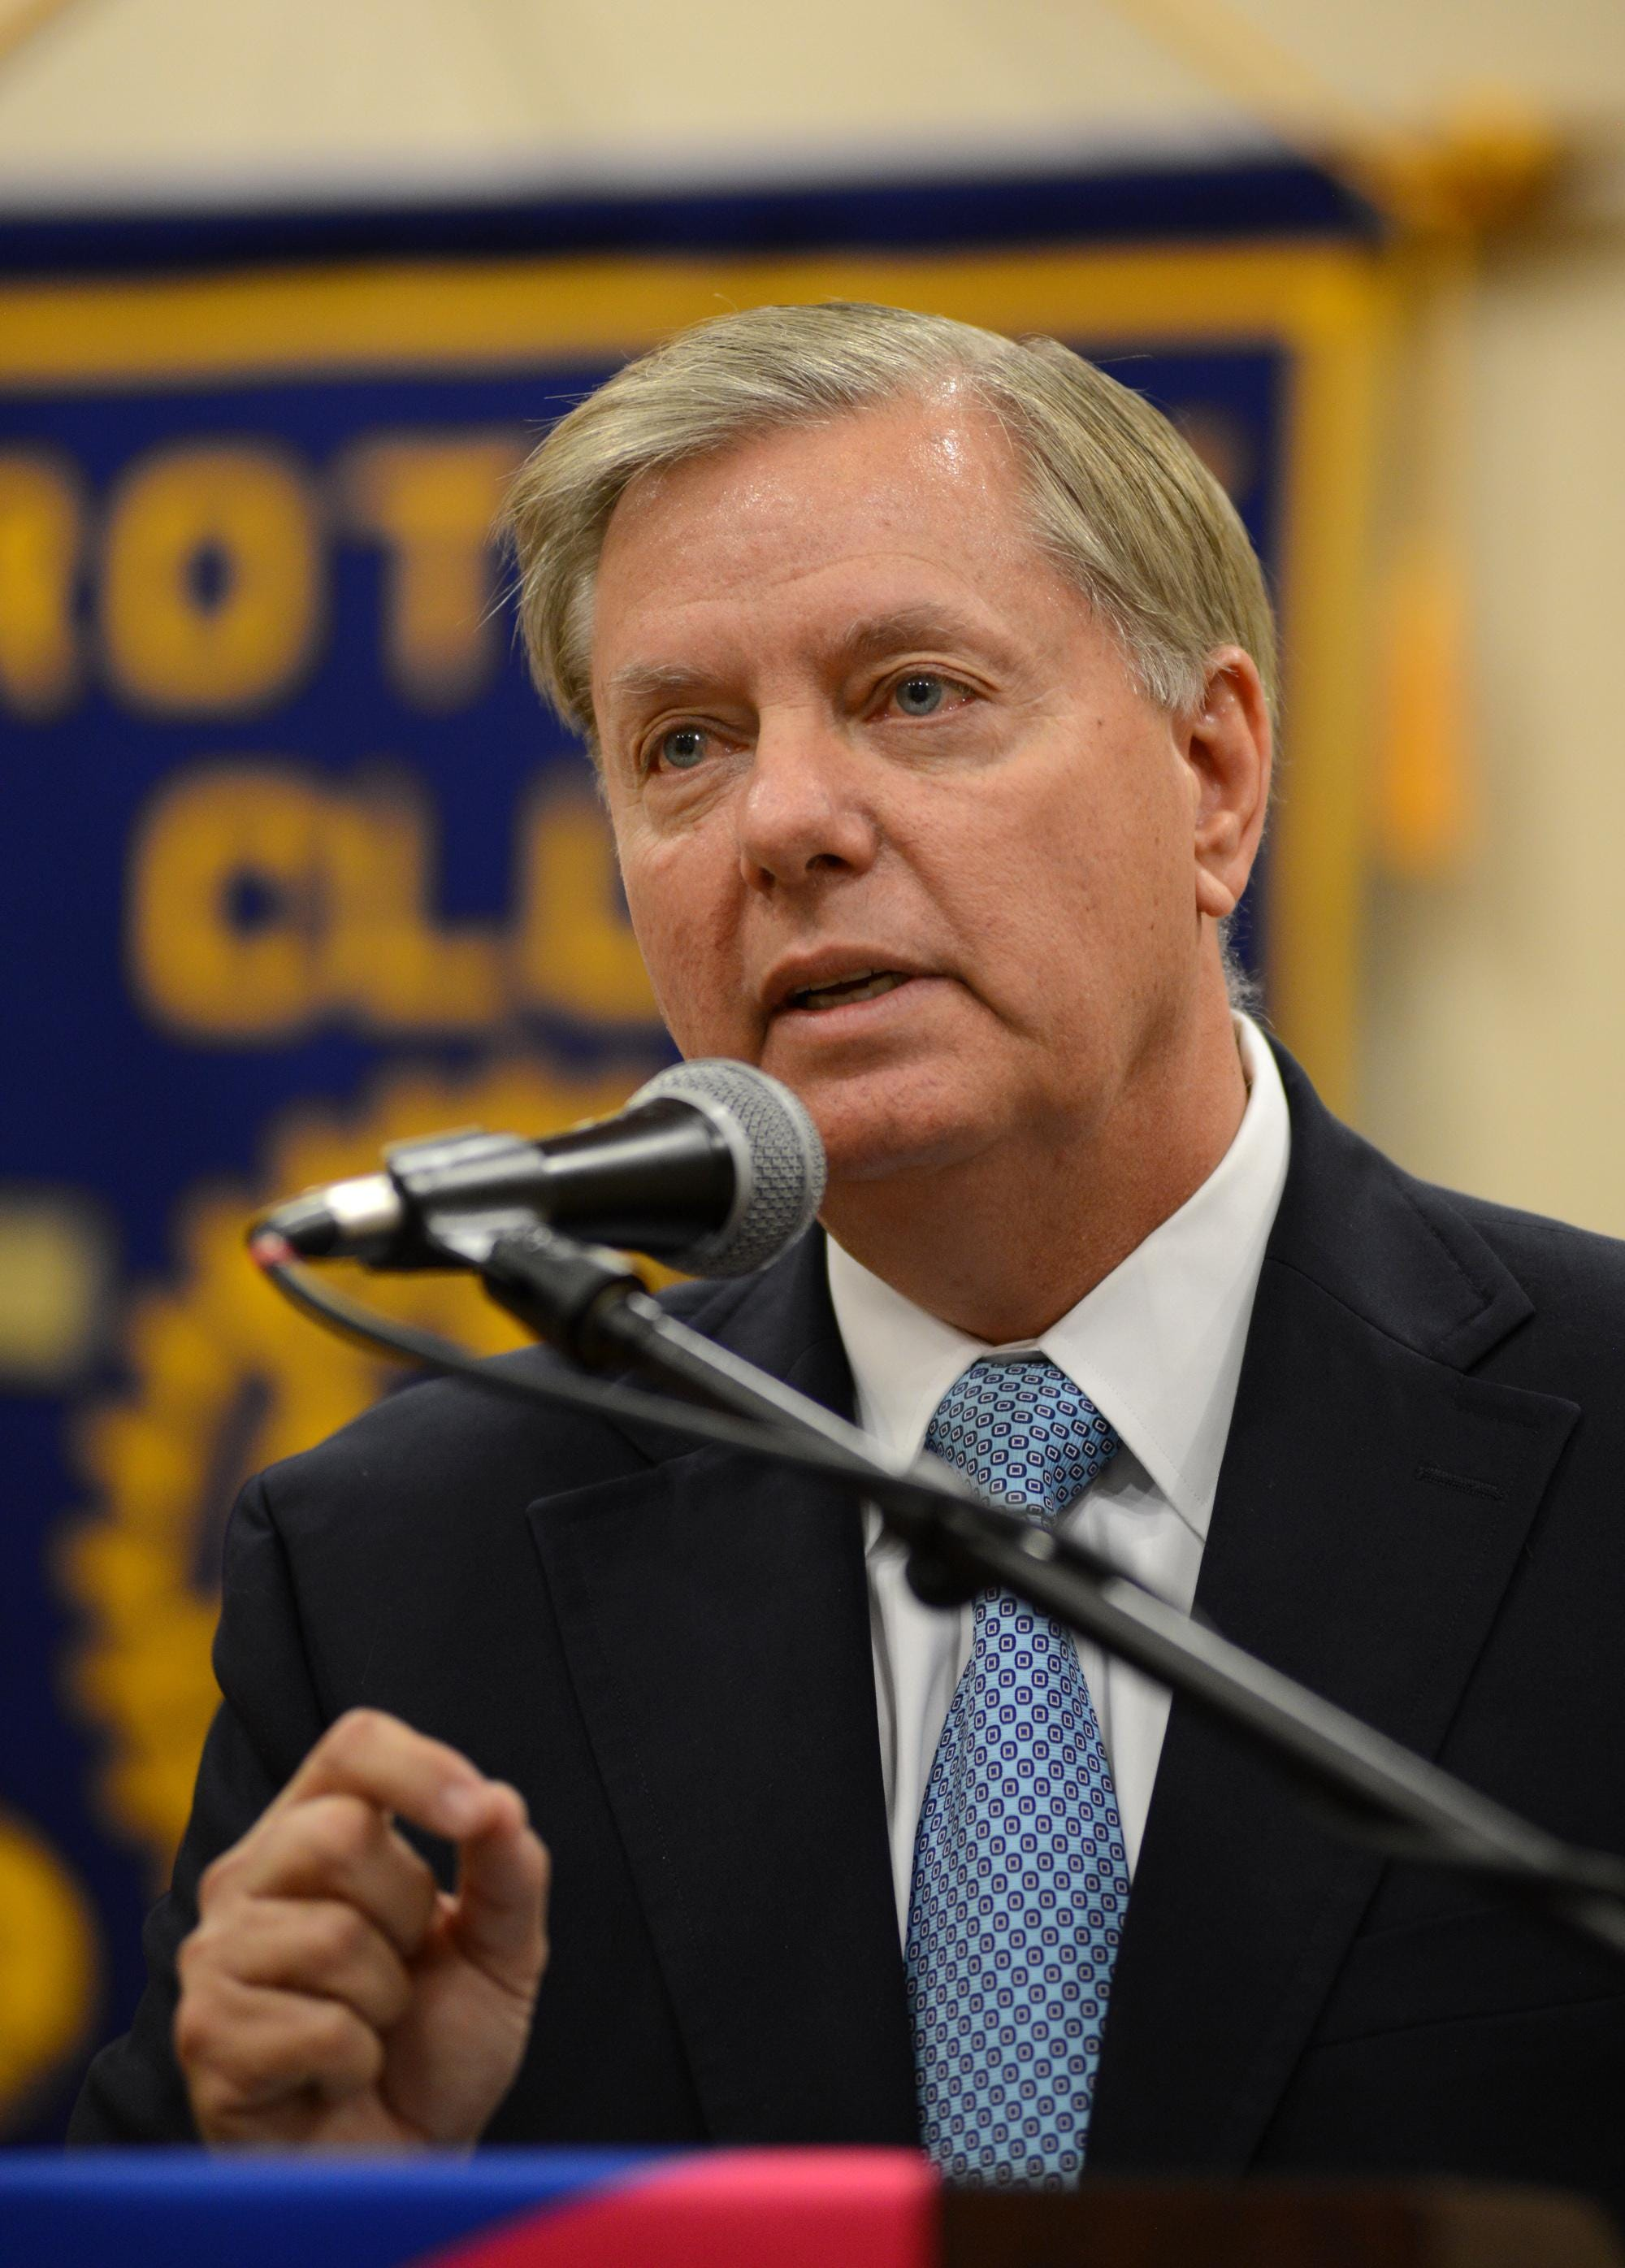 Graham doesn't make the cut for Greenville forum